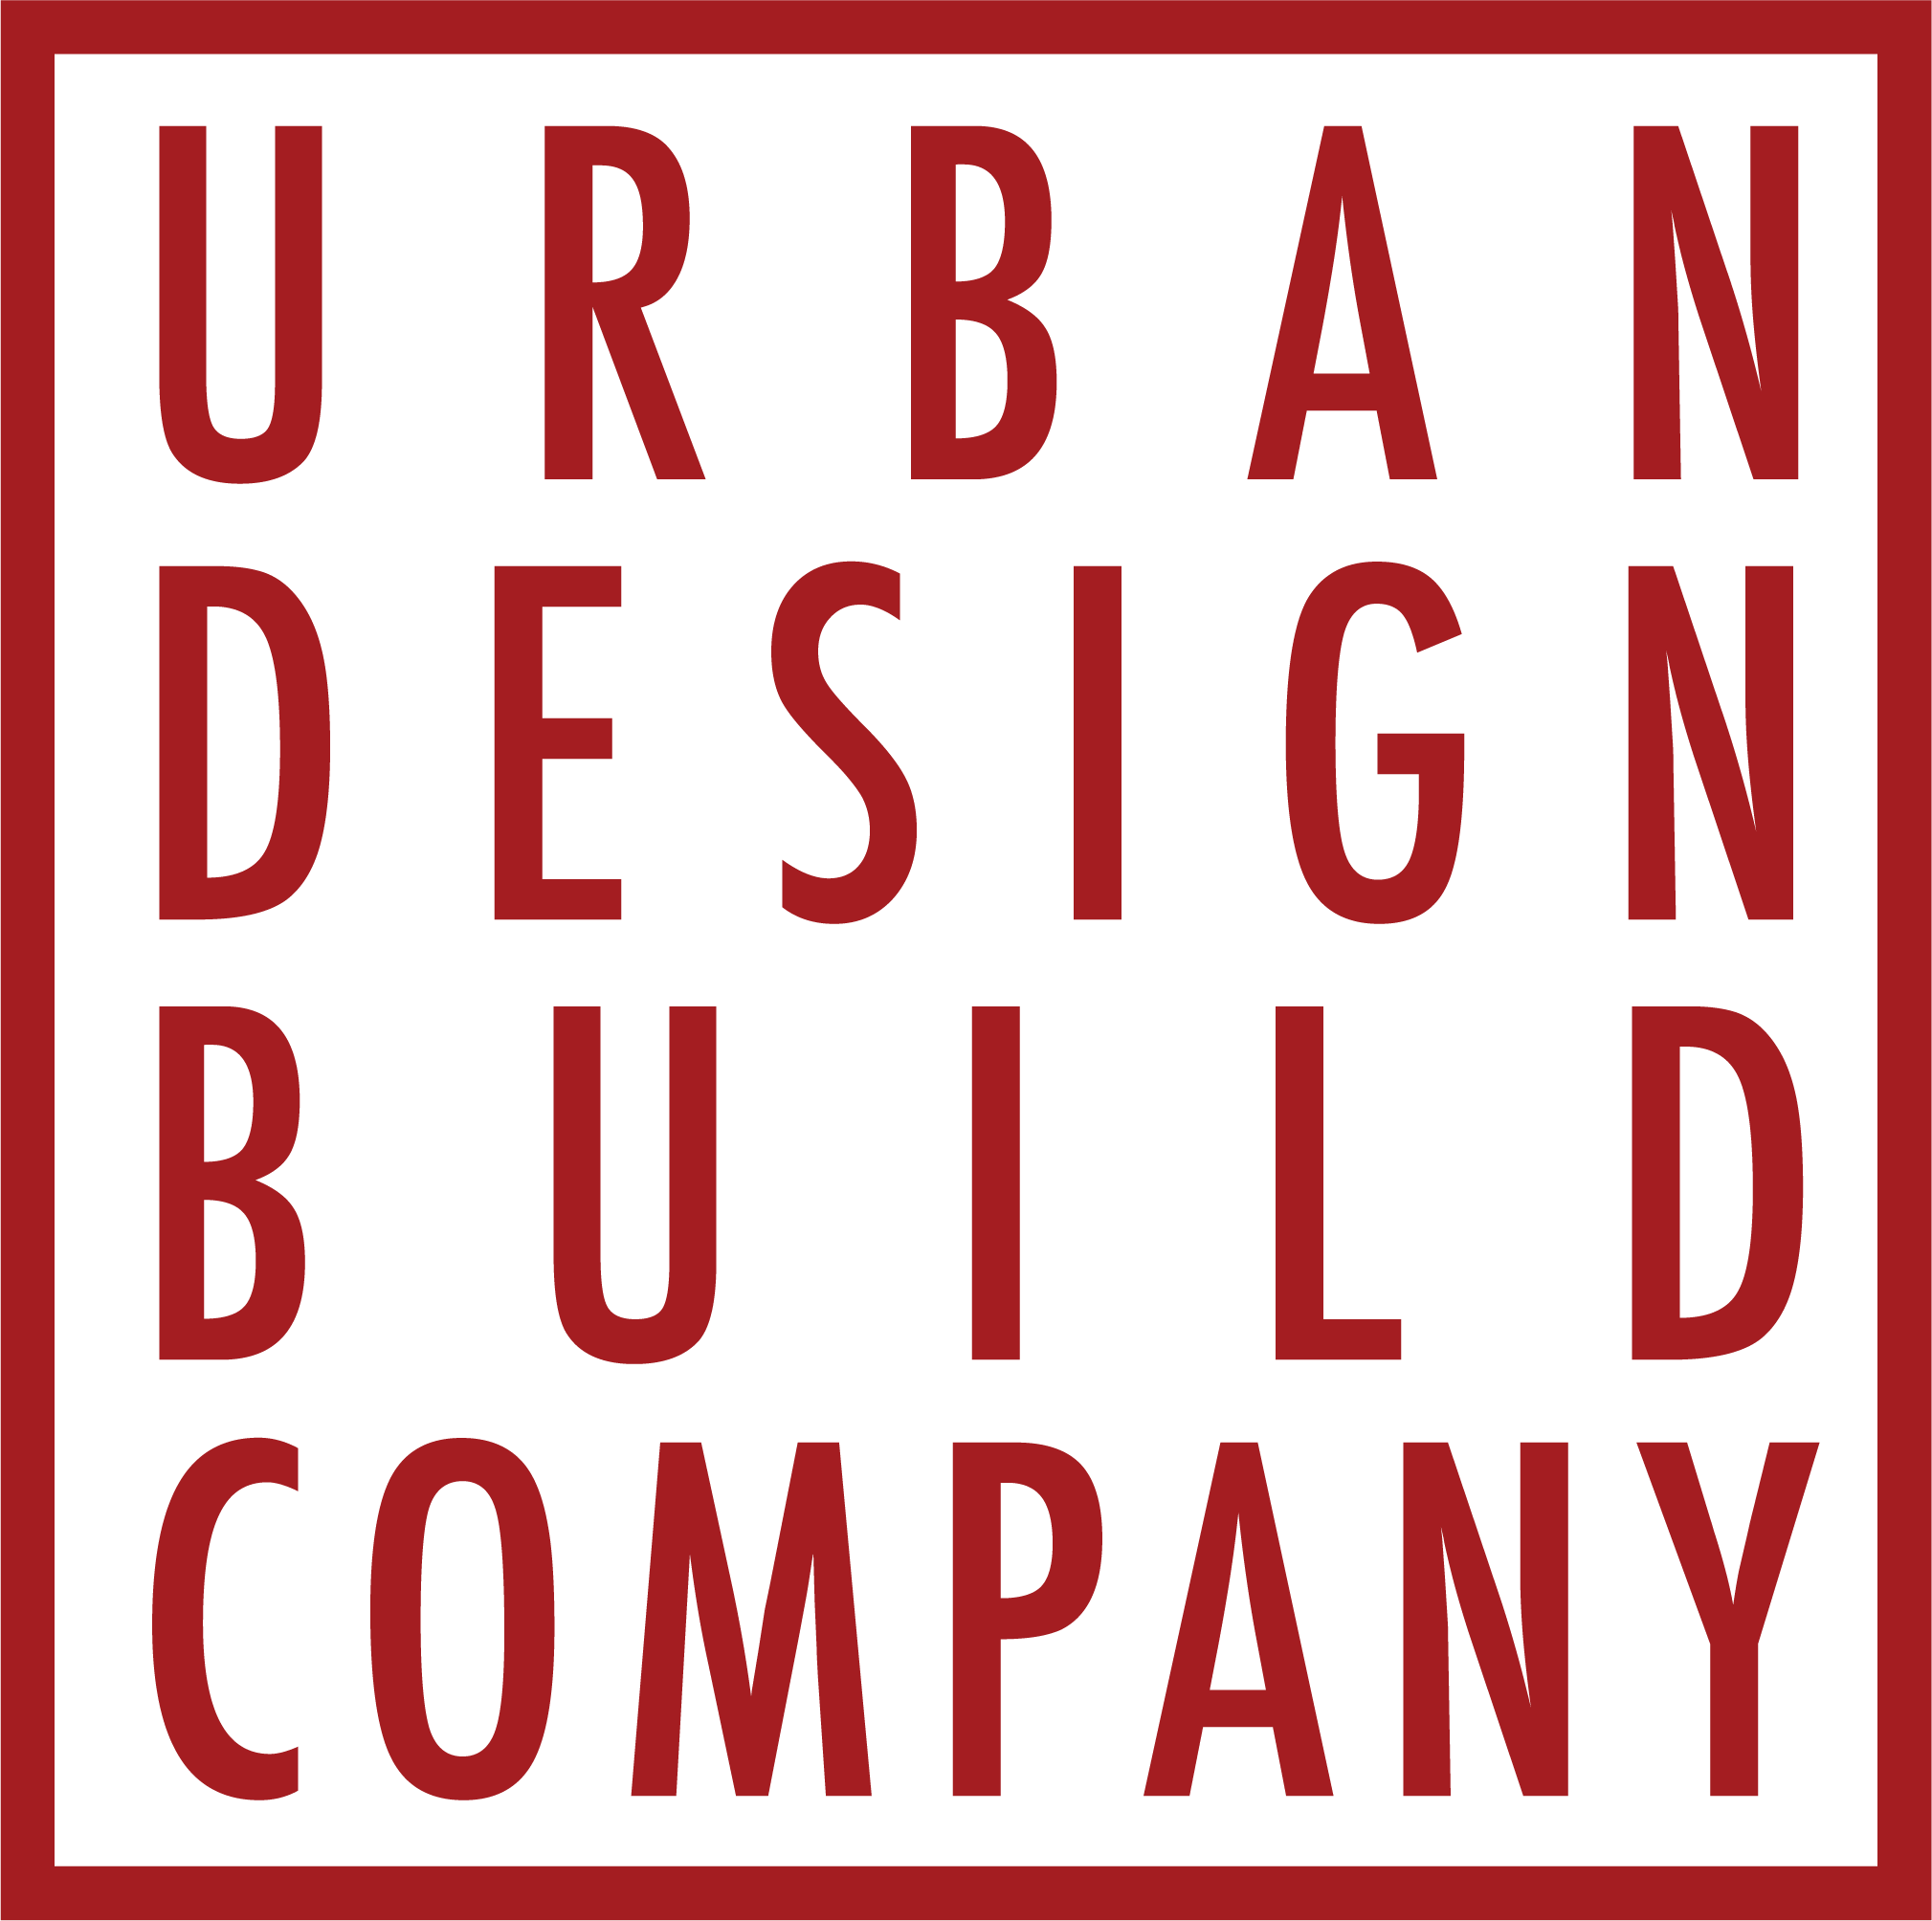 Urban Design Build Company